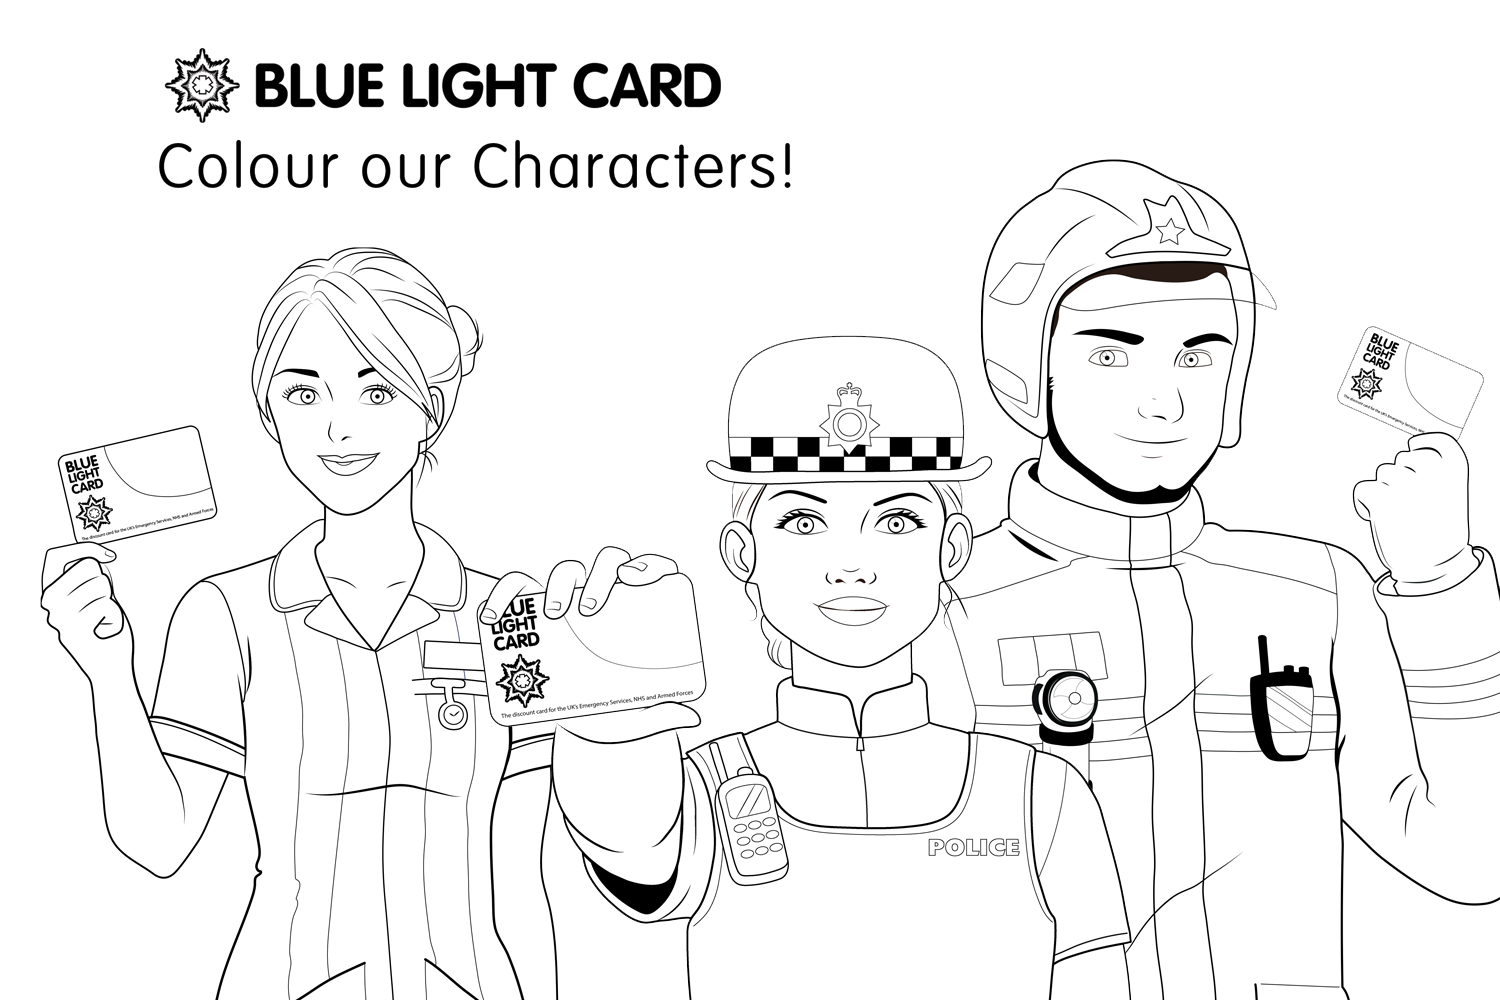 Colour our Characters!